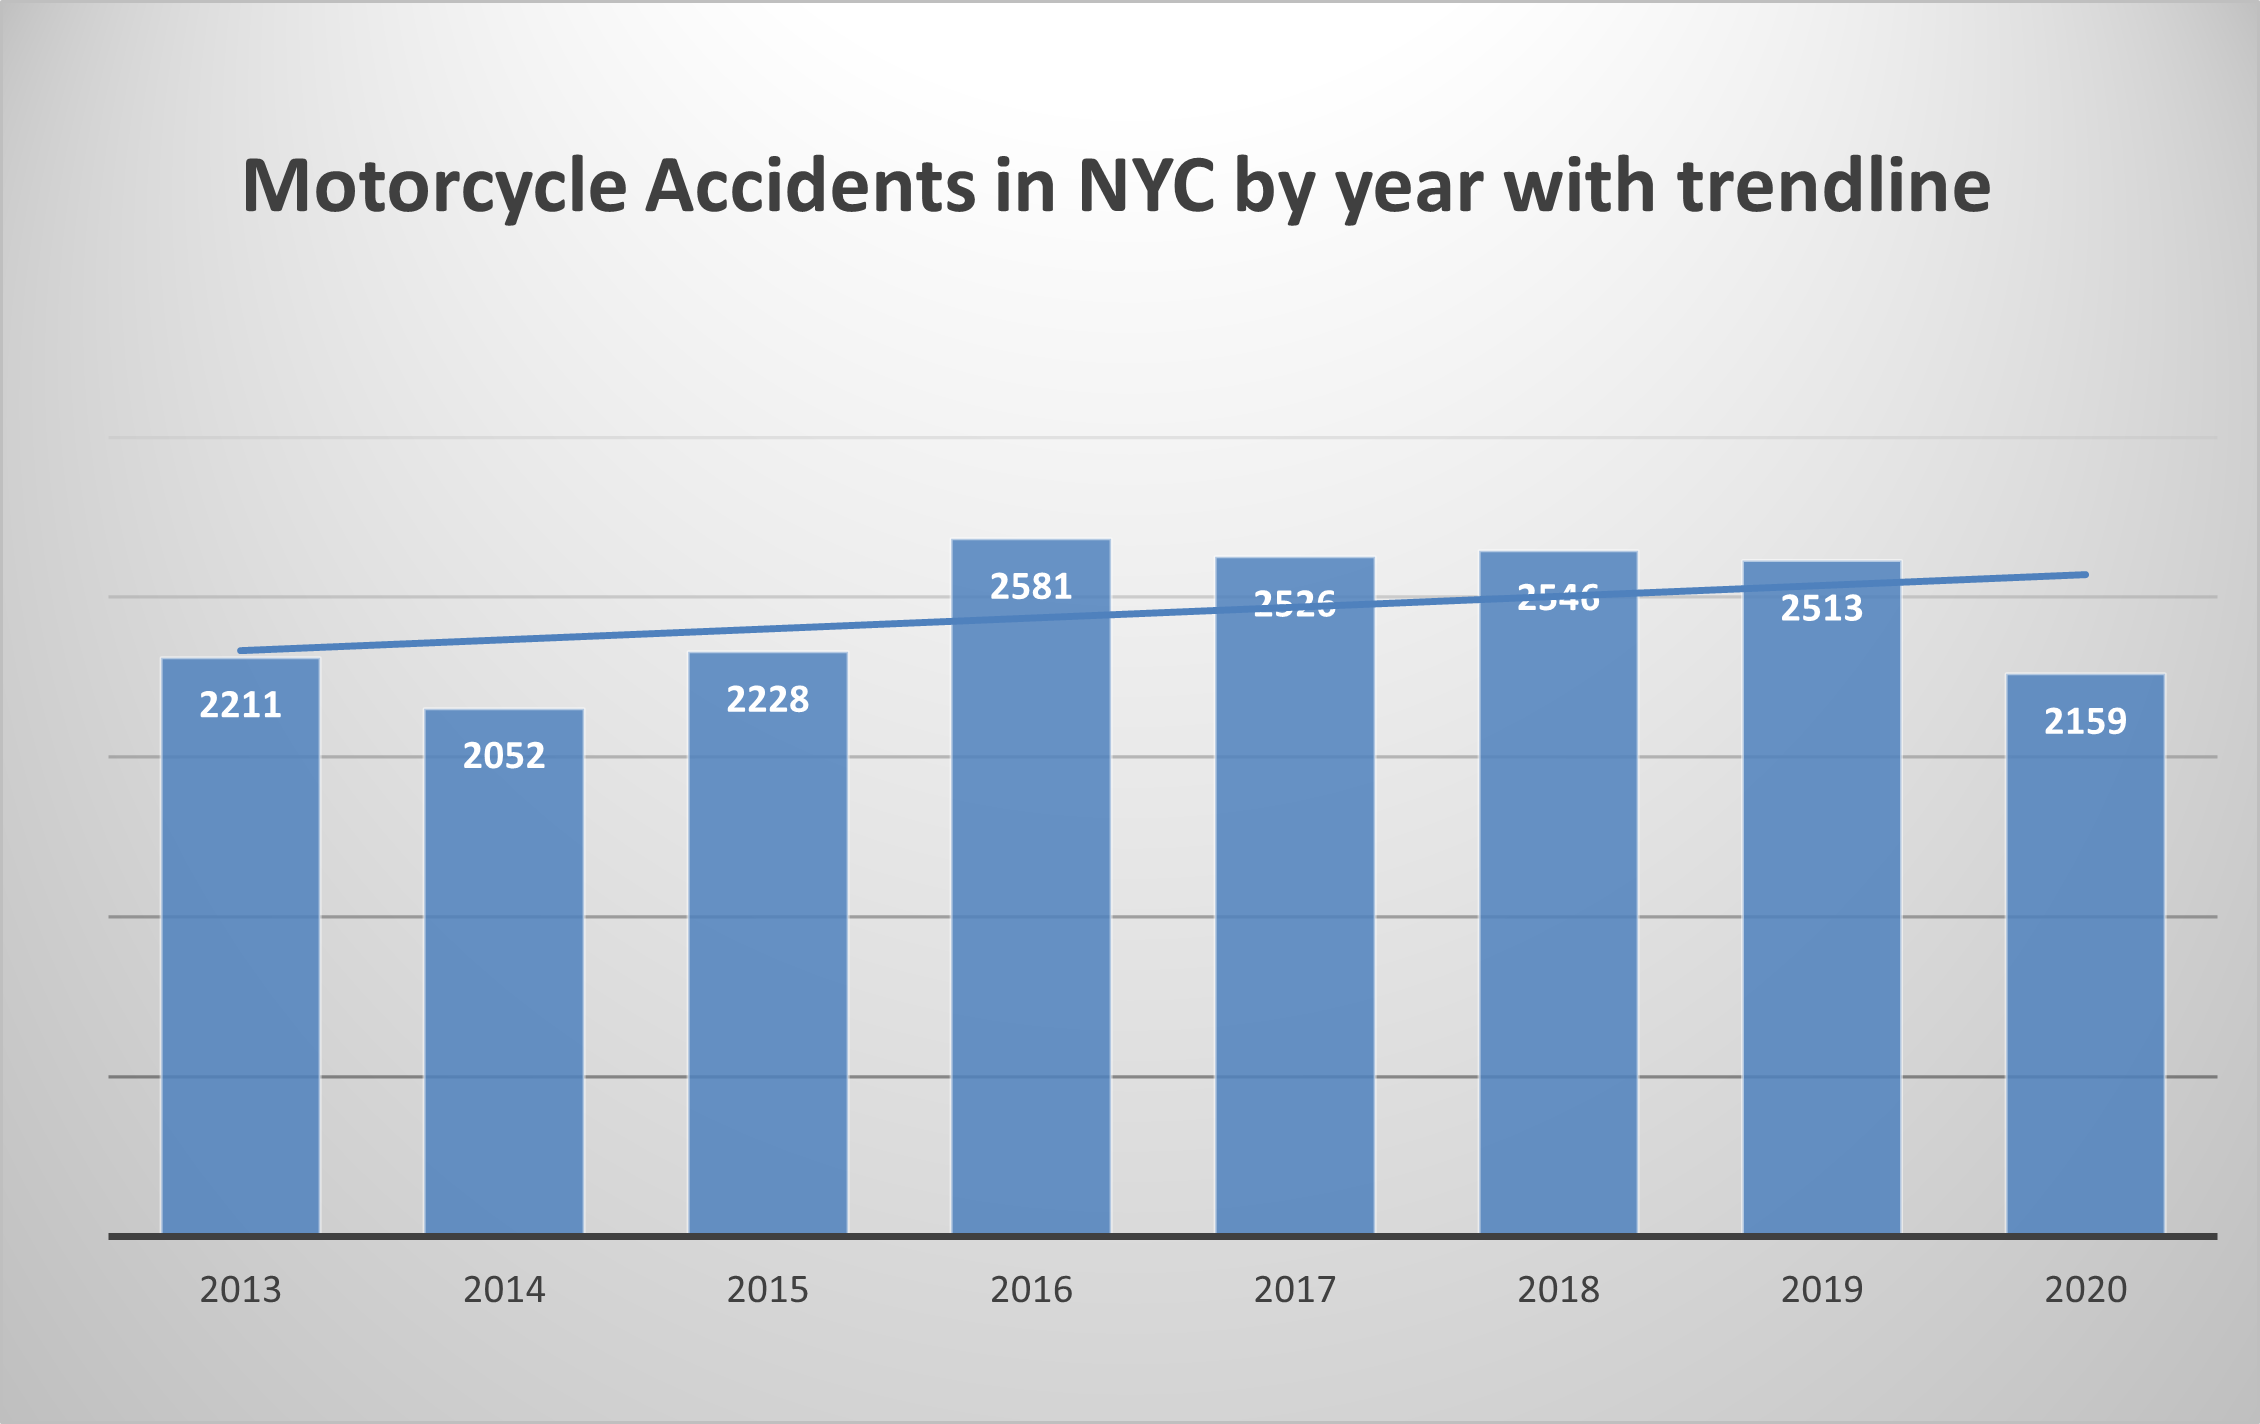 New York Motorcycle Accidents in 2020